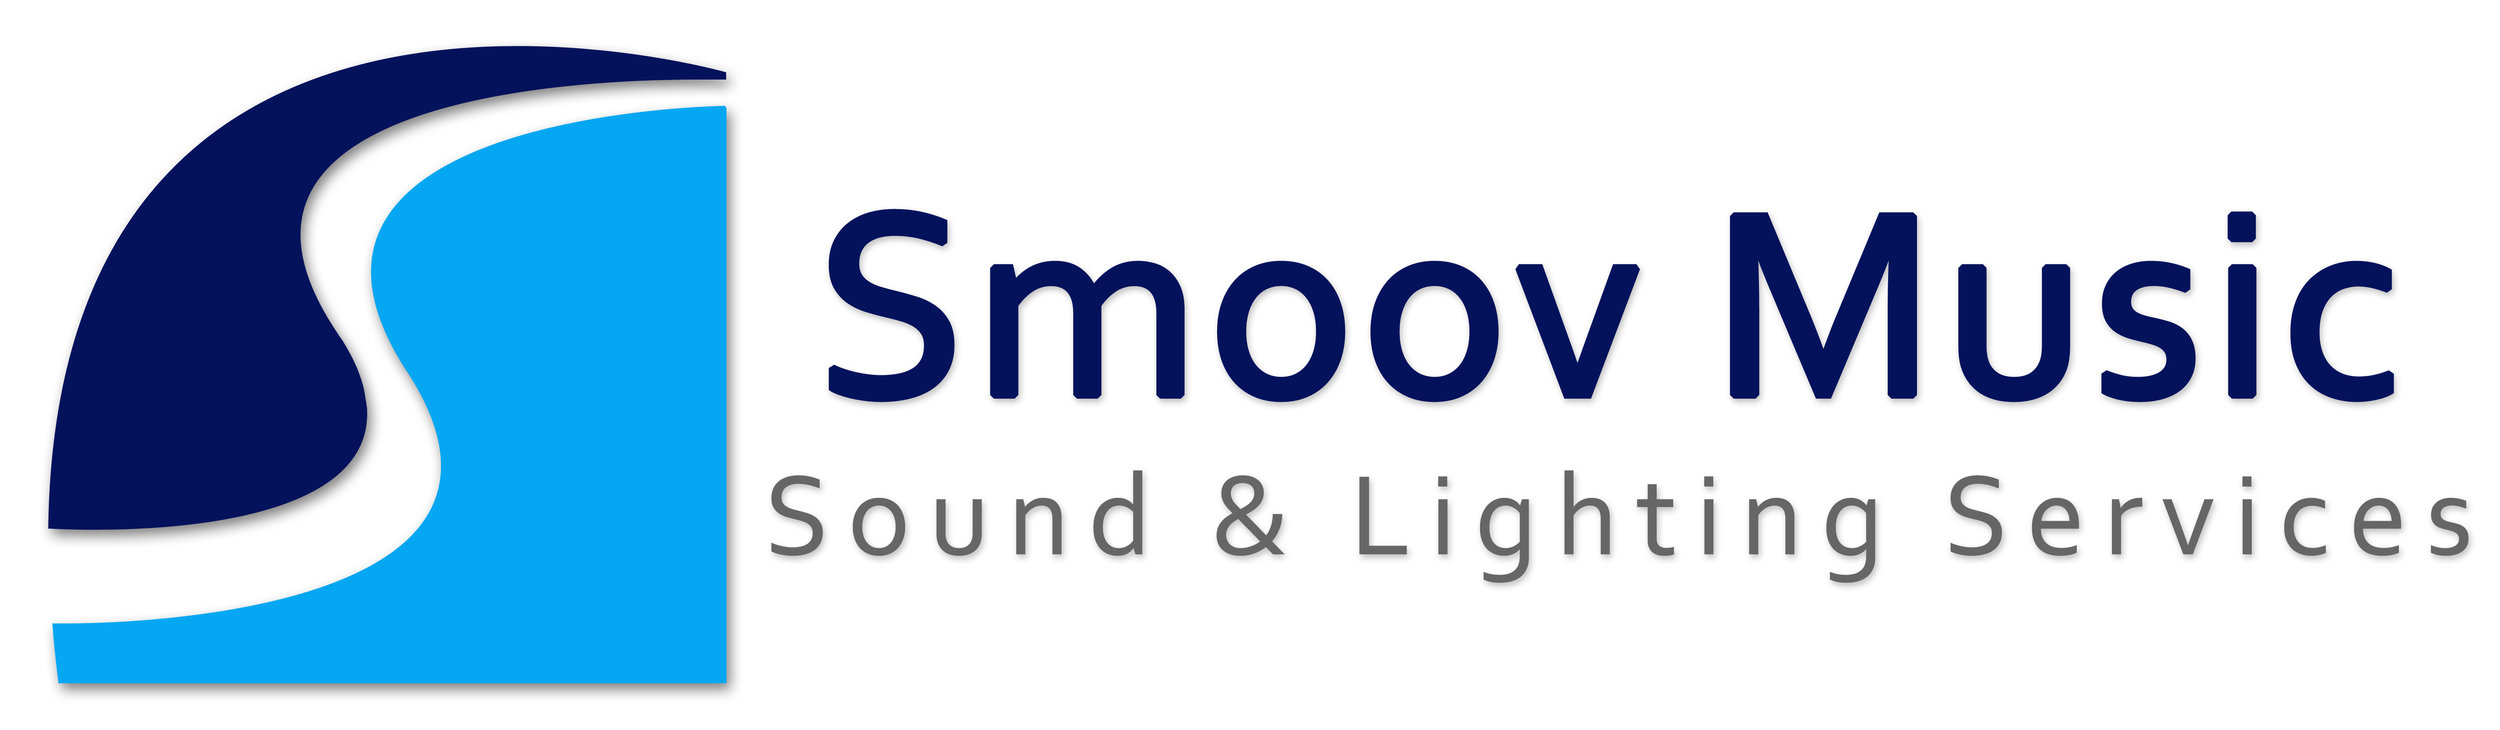 smoov_logo_new.jpg